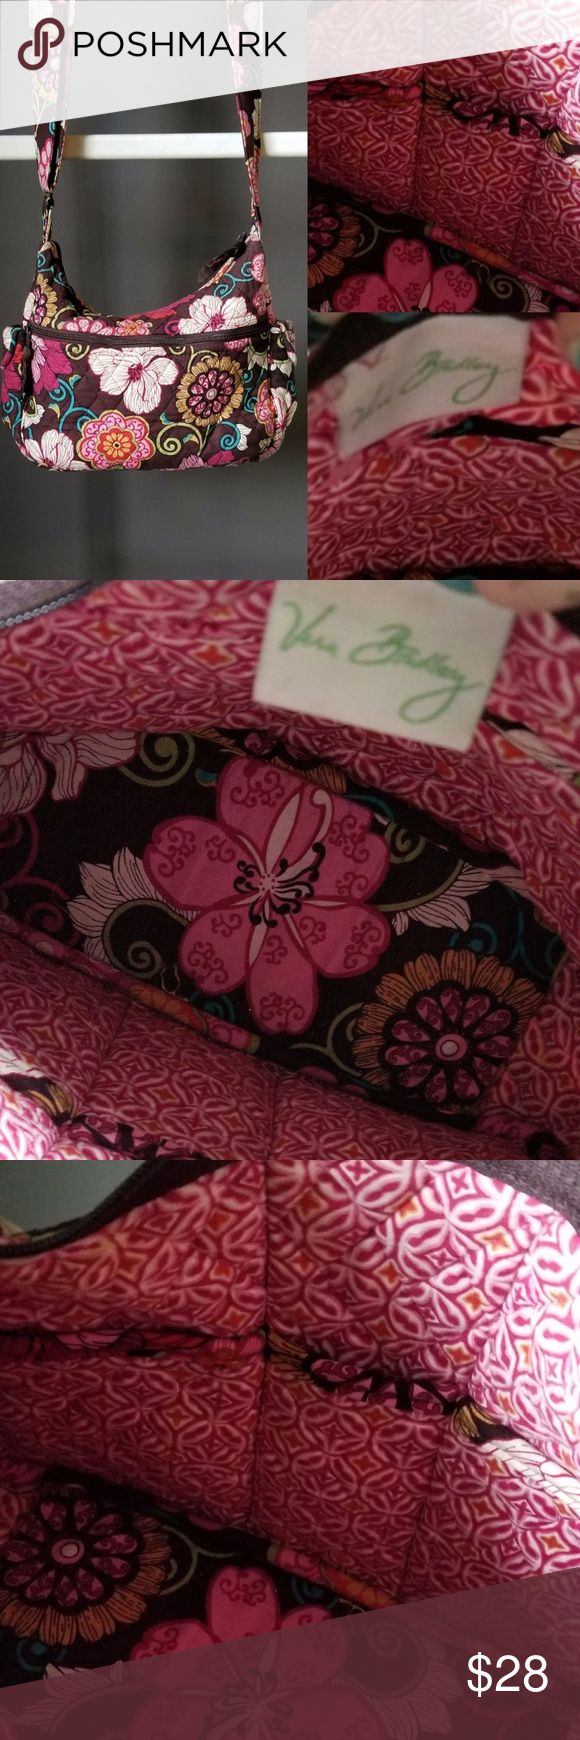 VERA BRADLEY Bold vibrant floral shoulder bag Chocolate brown with vibrant pinks and other berry colors and shades.  Very clean bag lots of storage would be a great diaper bag for a toddler momma Vera Bradley Bags Shoulder Bags